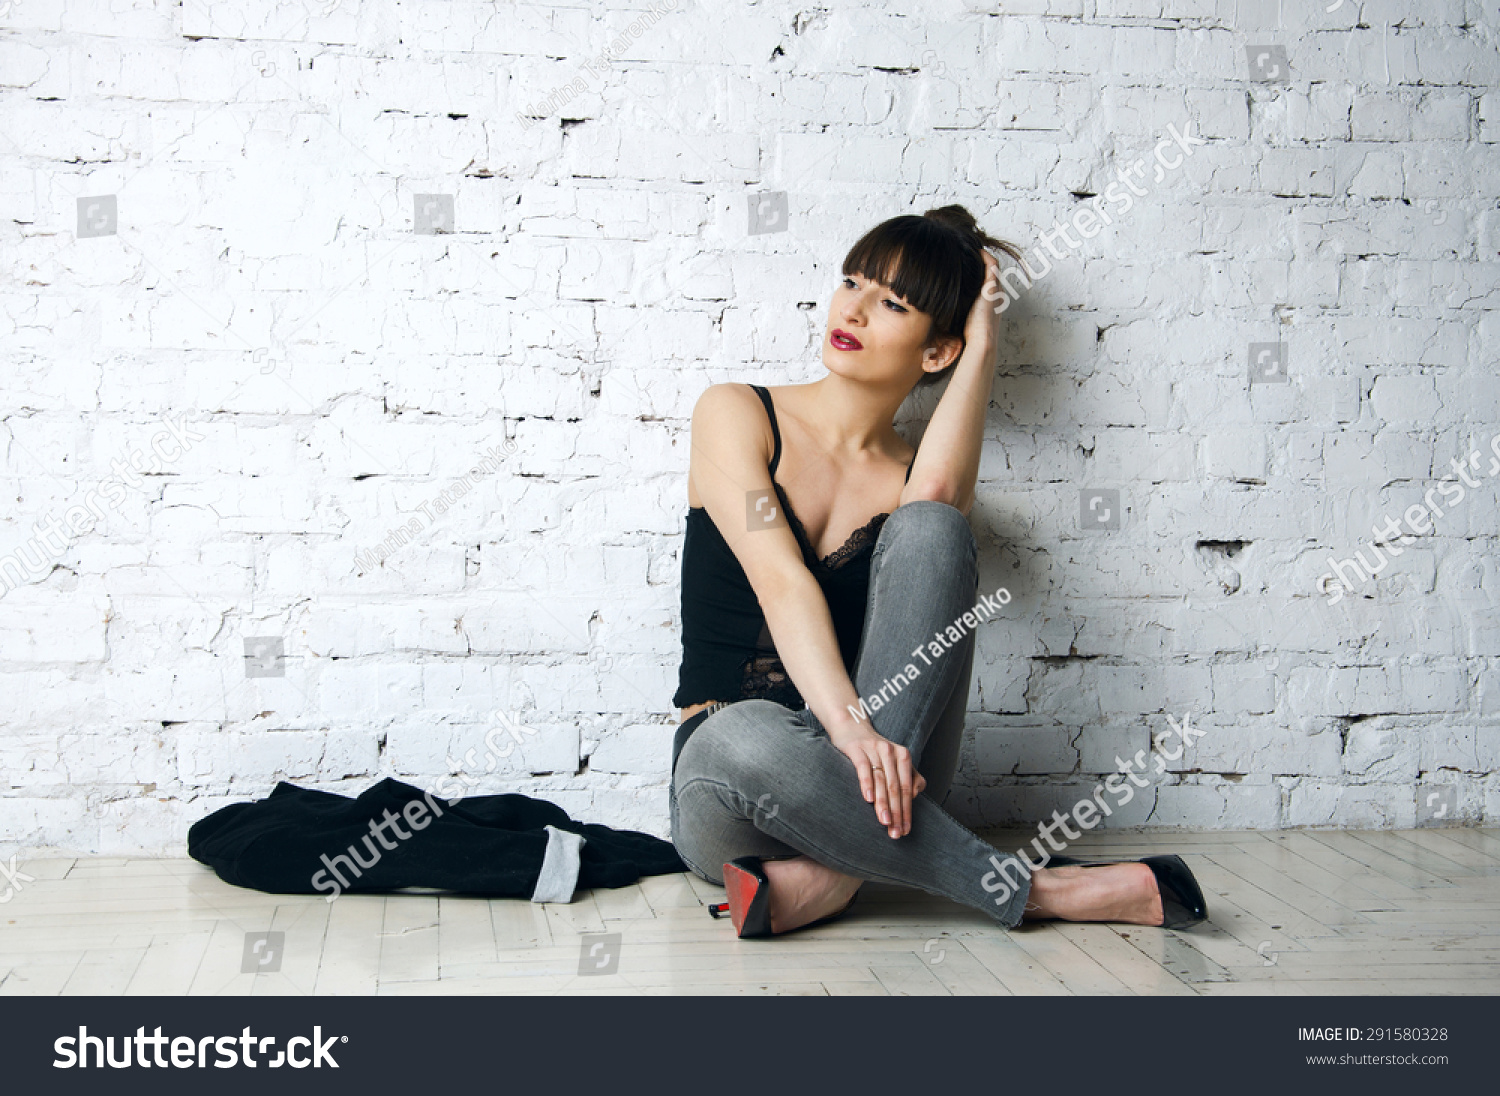 ee59a65a1ce Pretty sexy woman model with amazing body long legs seating on the floor  wearing denim jeans